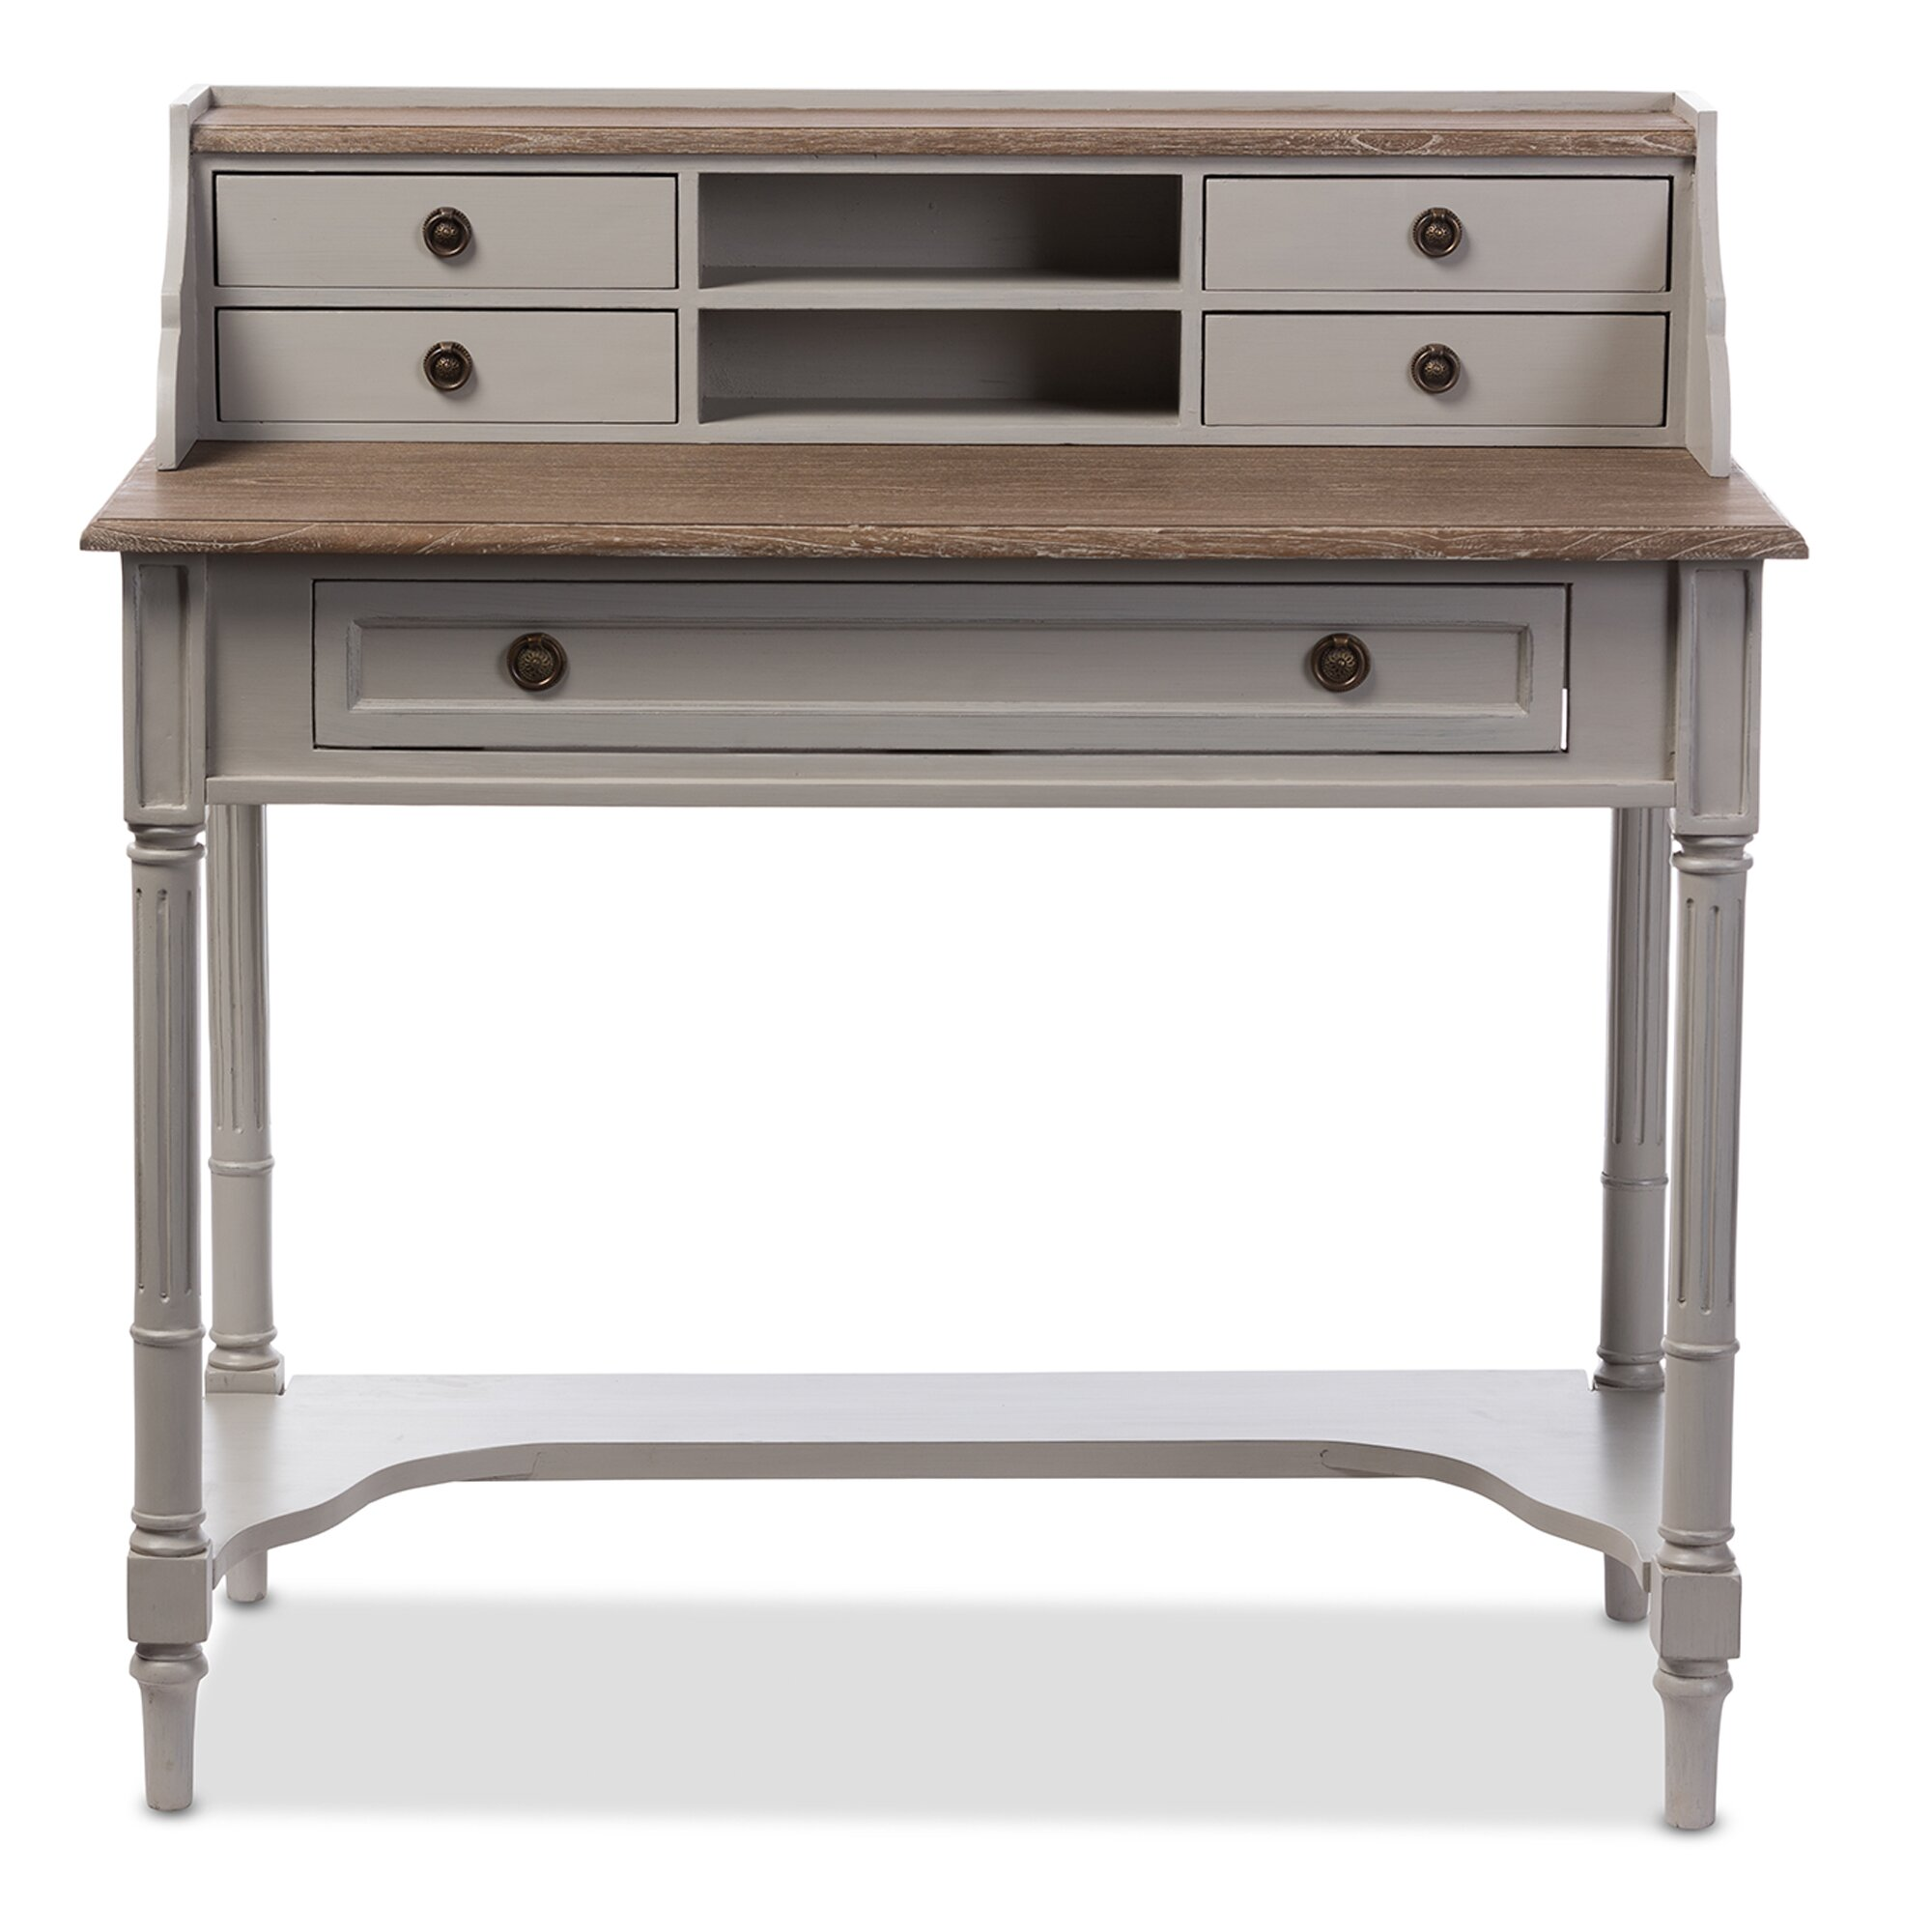 Bedroom furniture on white french provincial furniture for sale